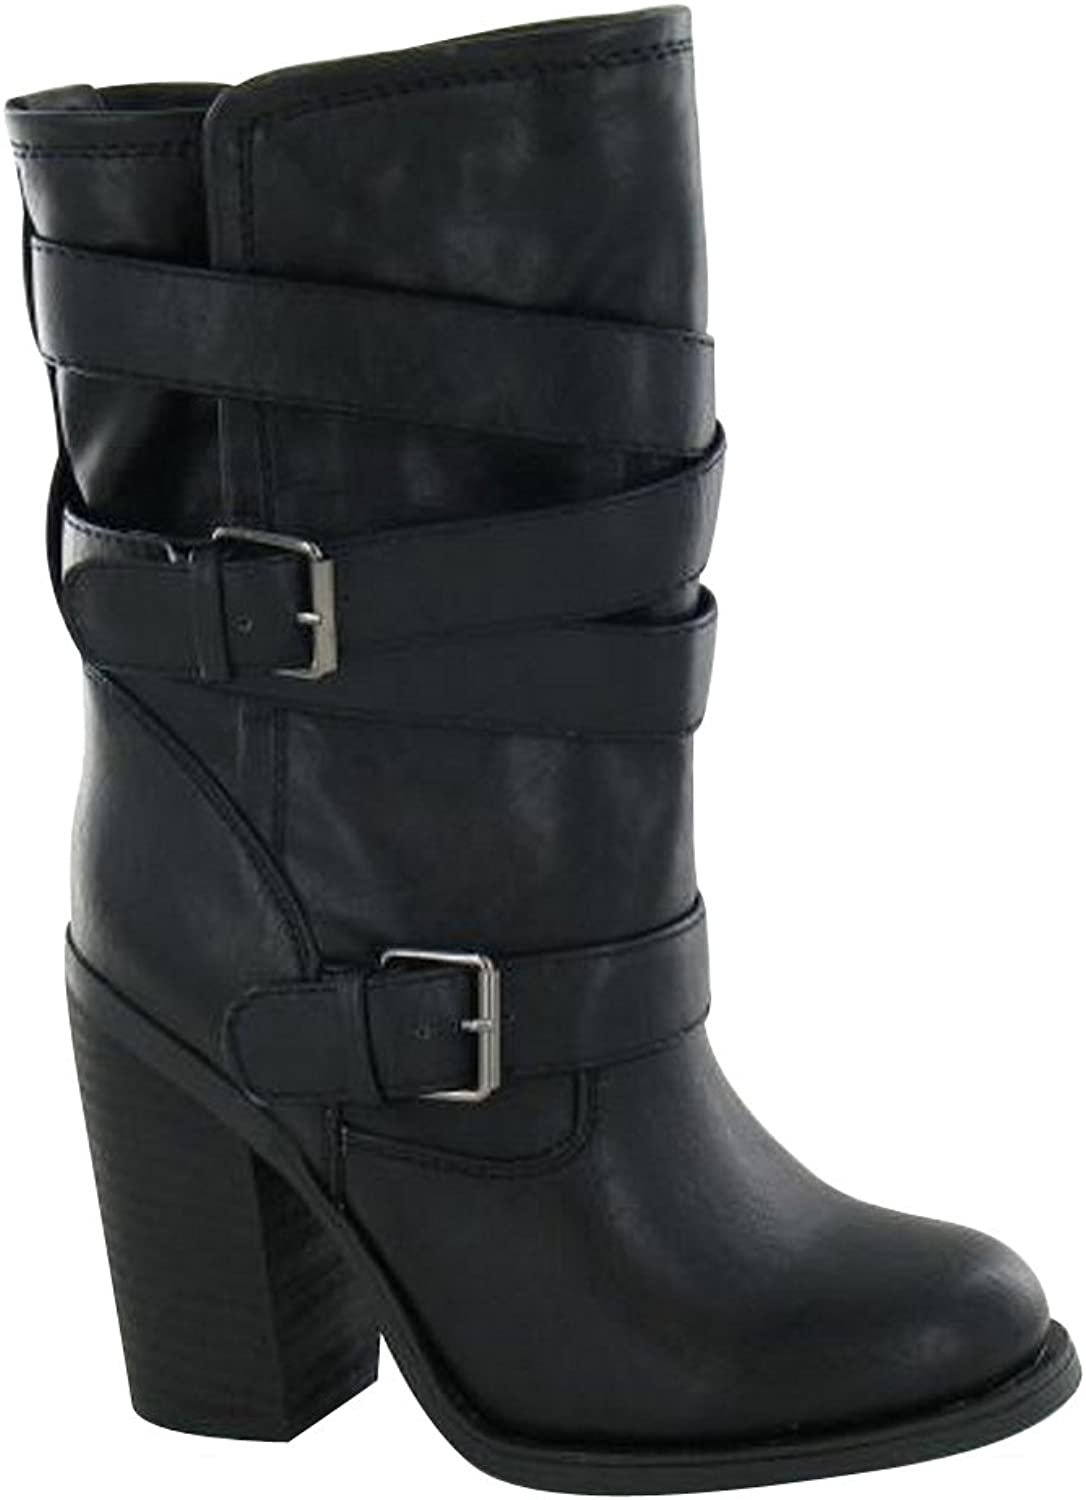 Spot On Womens Ladies Buckle Up High Heeled Boots